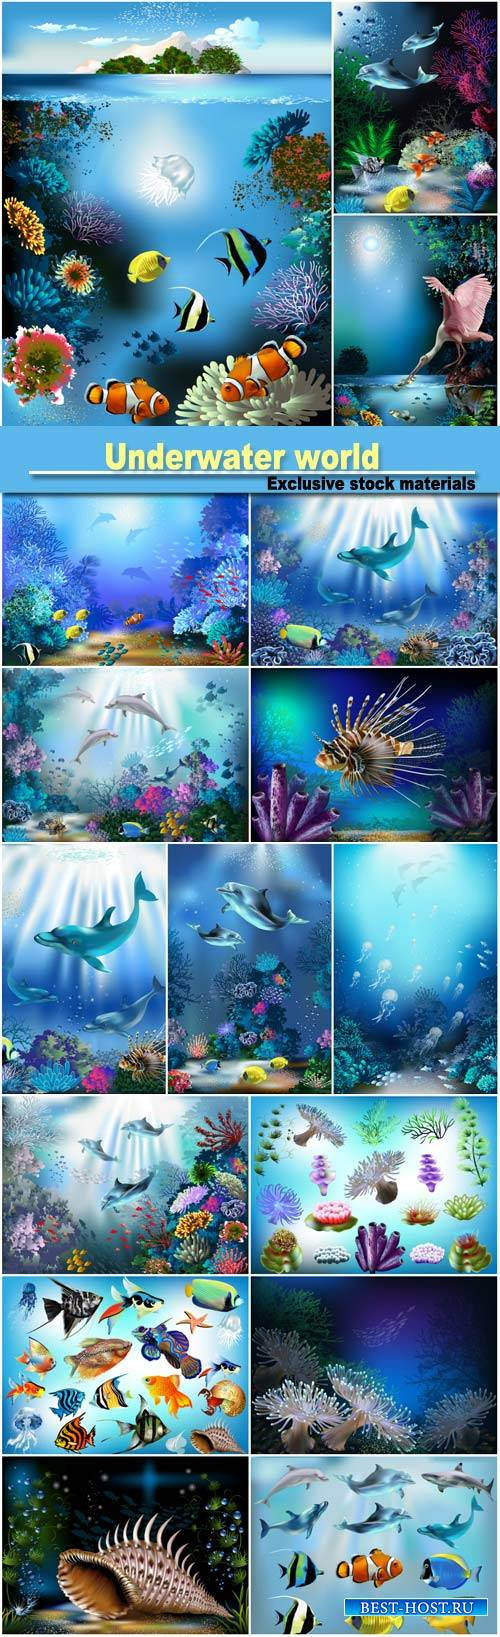 Underwater world, fish and dolphins